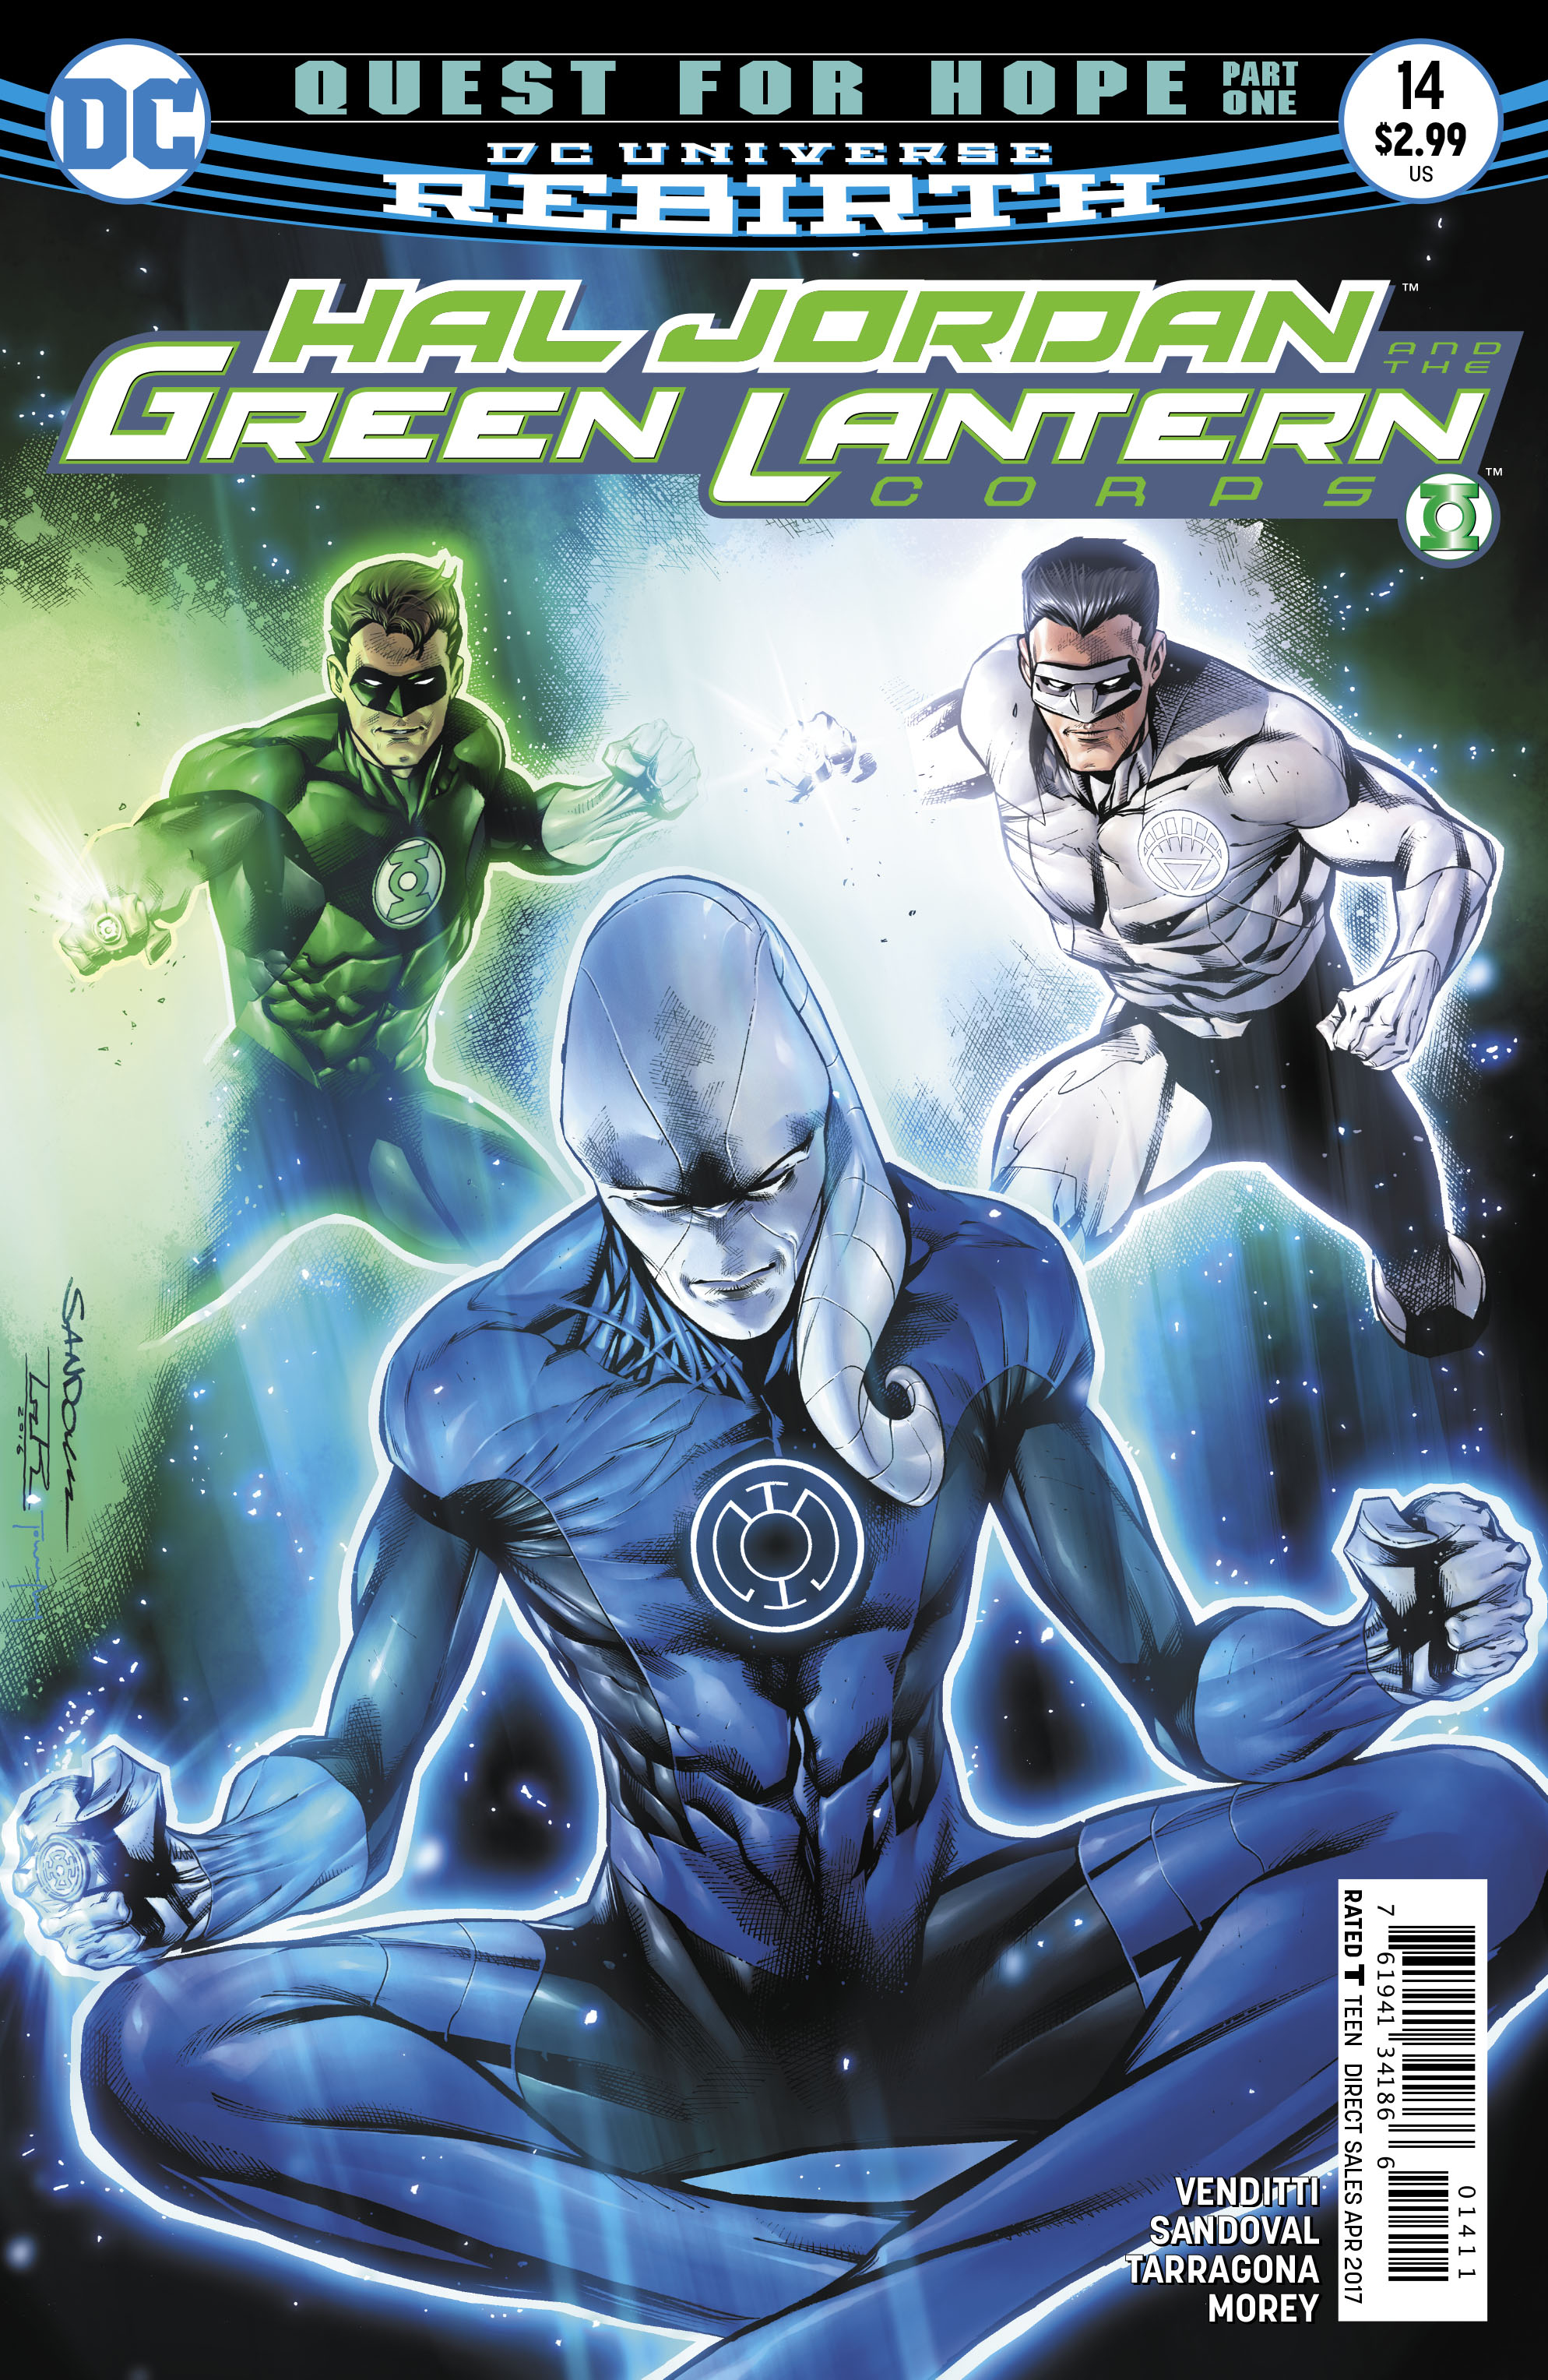 HAL JORDAN AND THE GREEN LANTERN CORPS #14